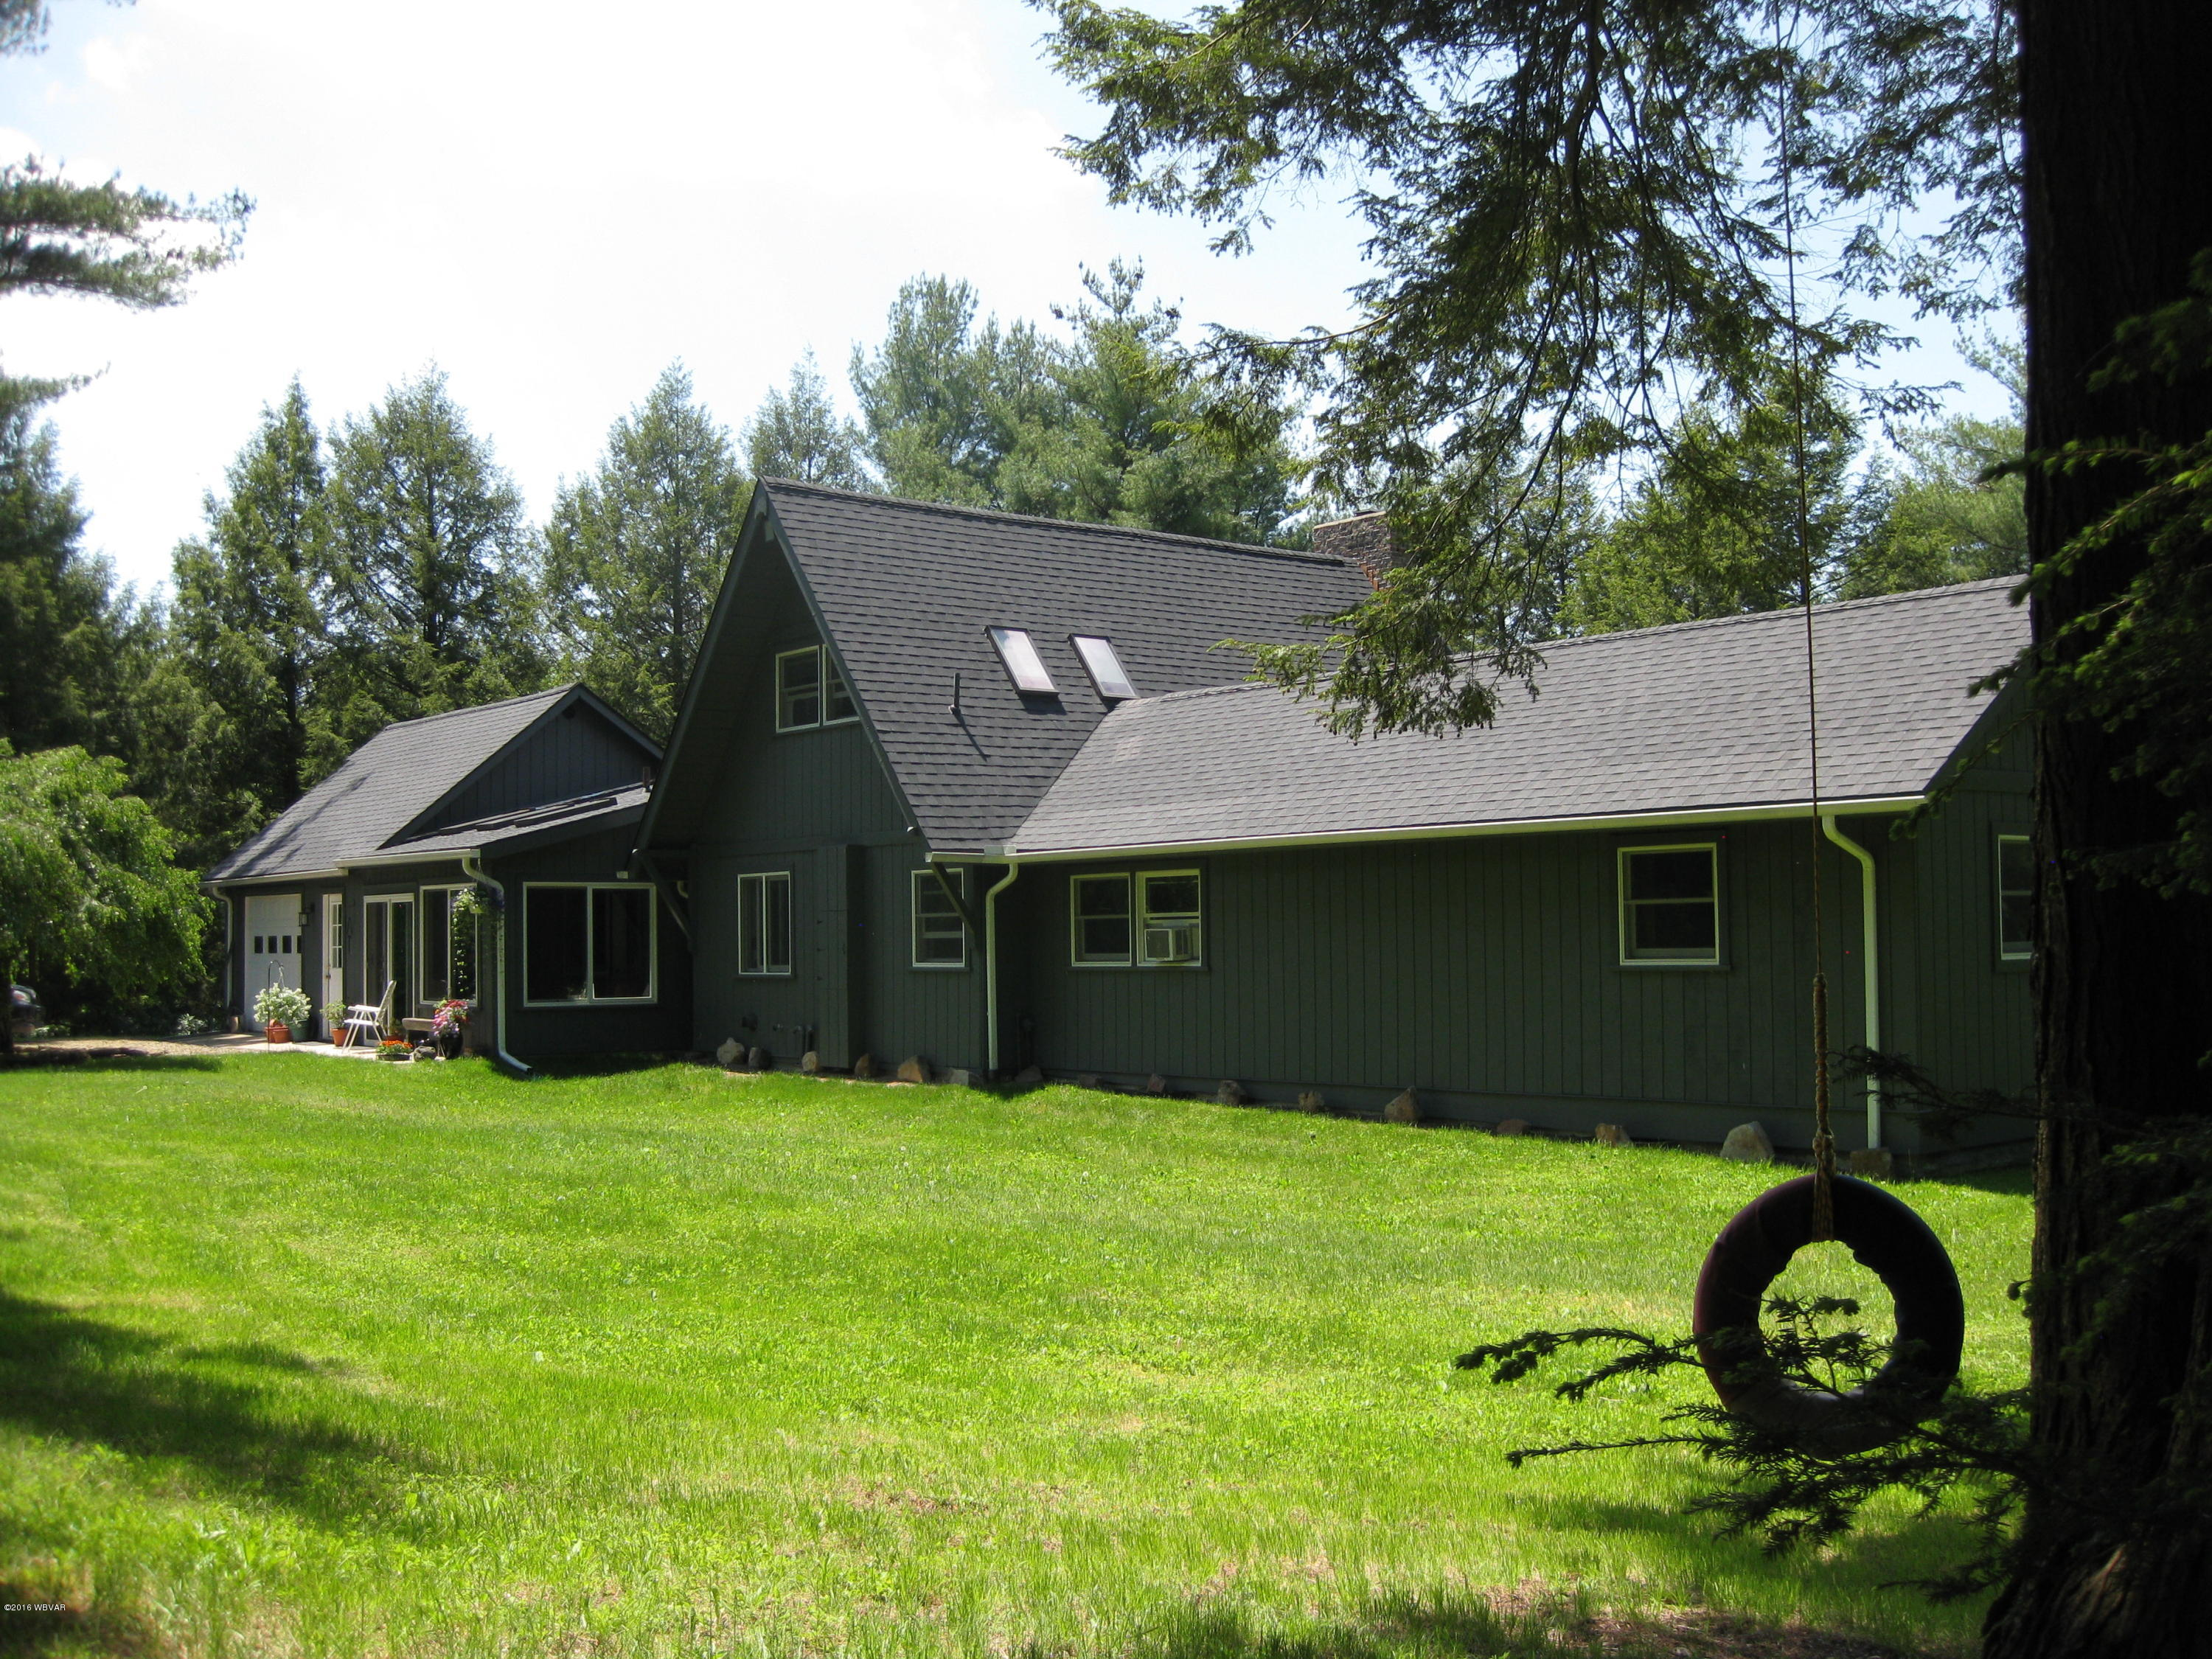 2071 ROUTE 4008 HIGHWAY,Forksville,PA 18616,3 Bedrooms Bedrooms,Cabin/vacation home,ROUTE 4008,WB-76682